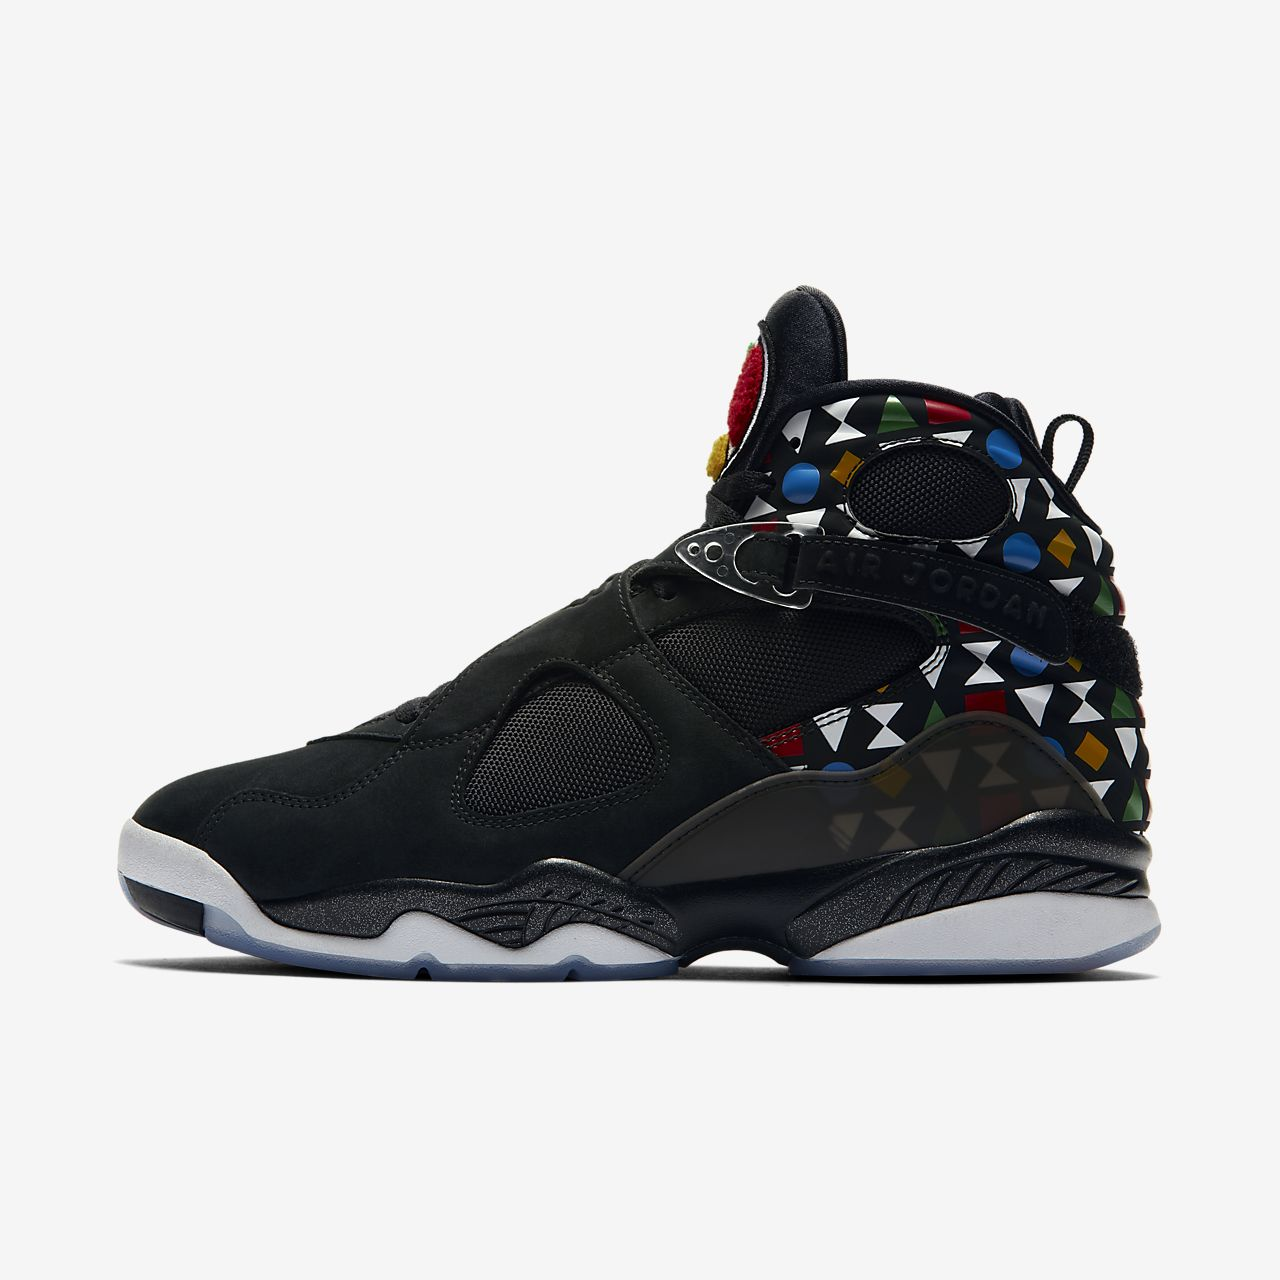 online here reputable site cheap price Chaussure Air Jordan 8 Retro Q54 pour Homme